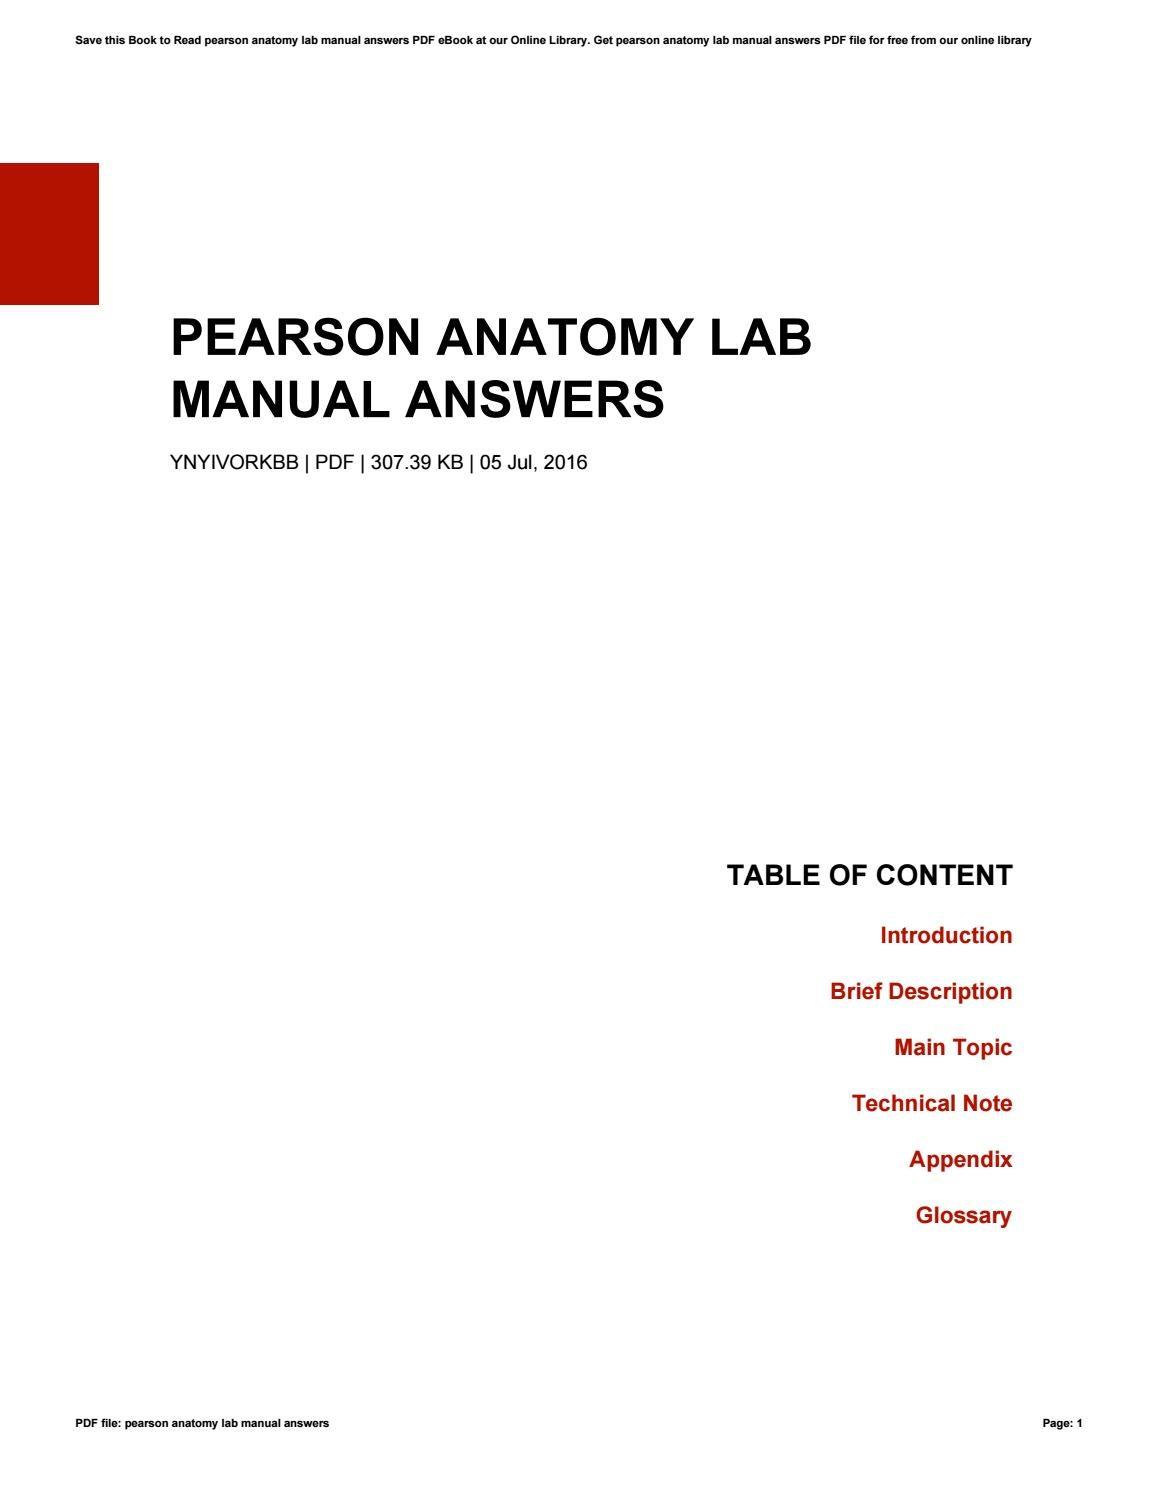 Pearson anatomy lab manual answers by JamesMcCarthy4818